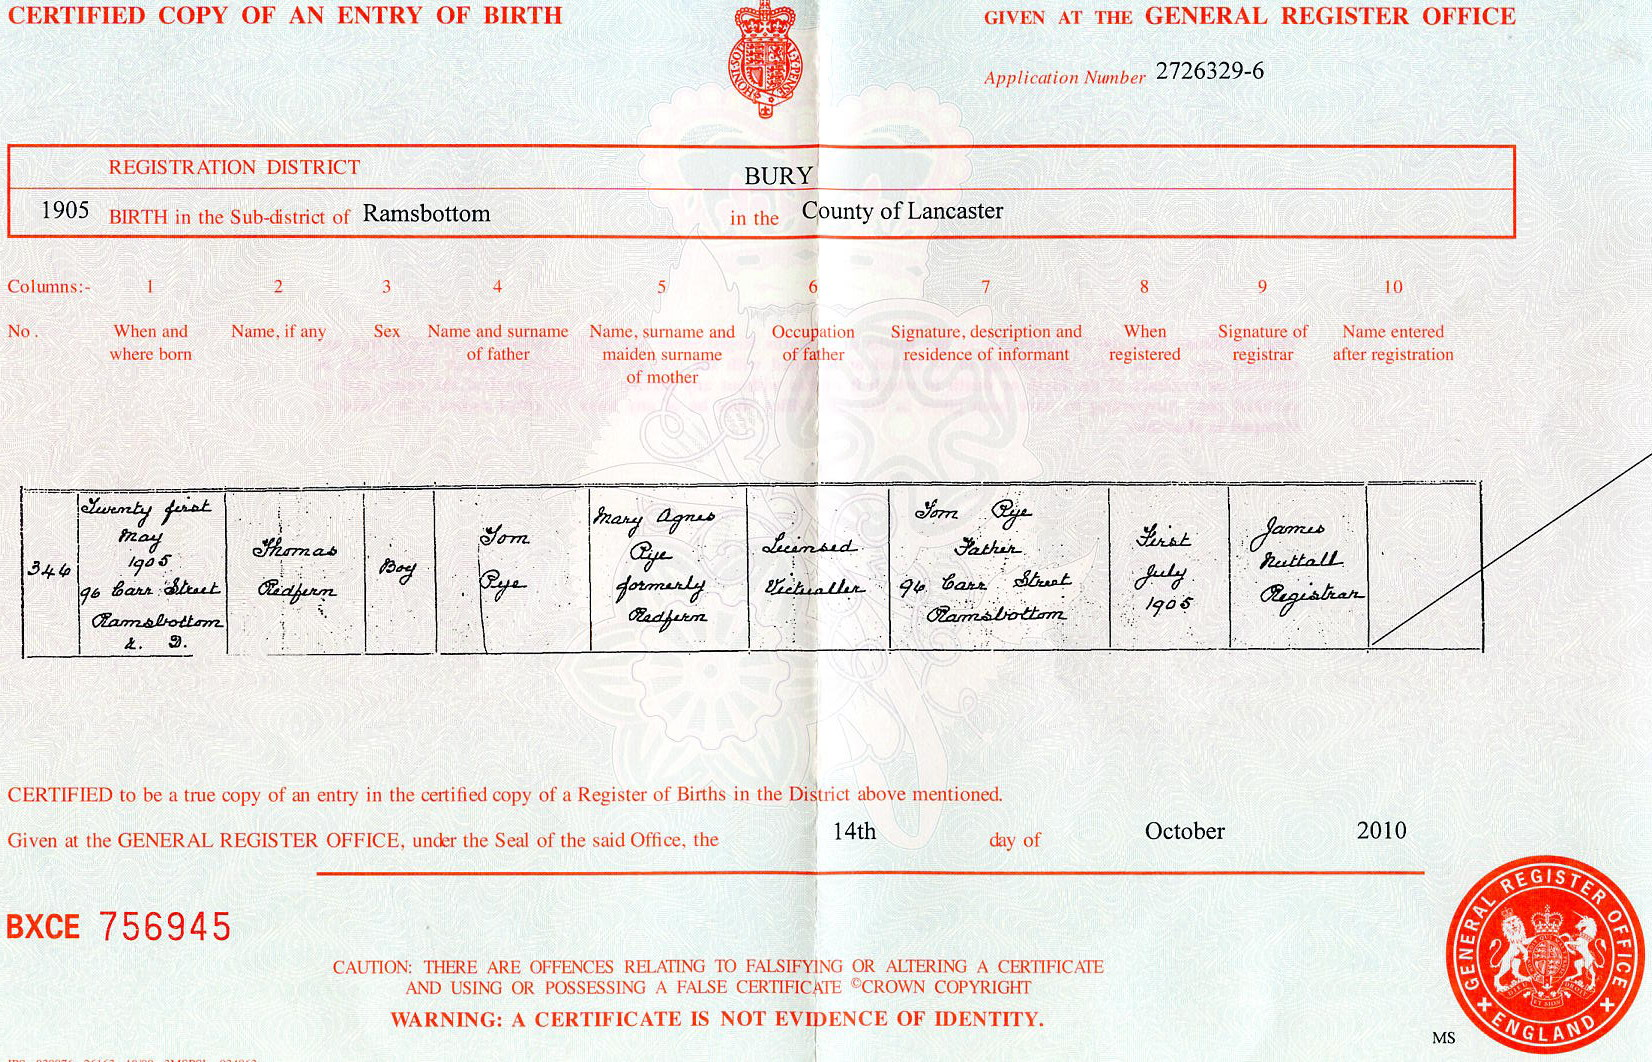 Thomas Redfern Pye birth certificate